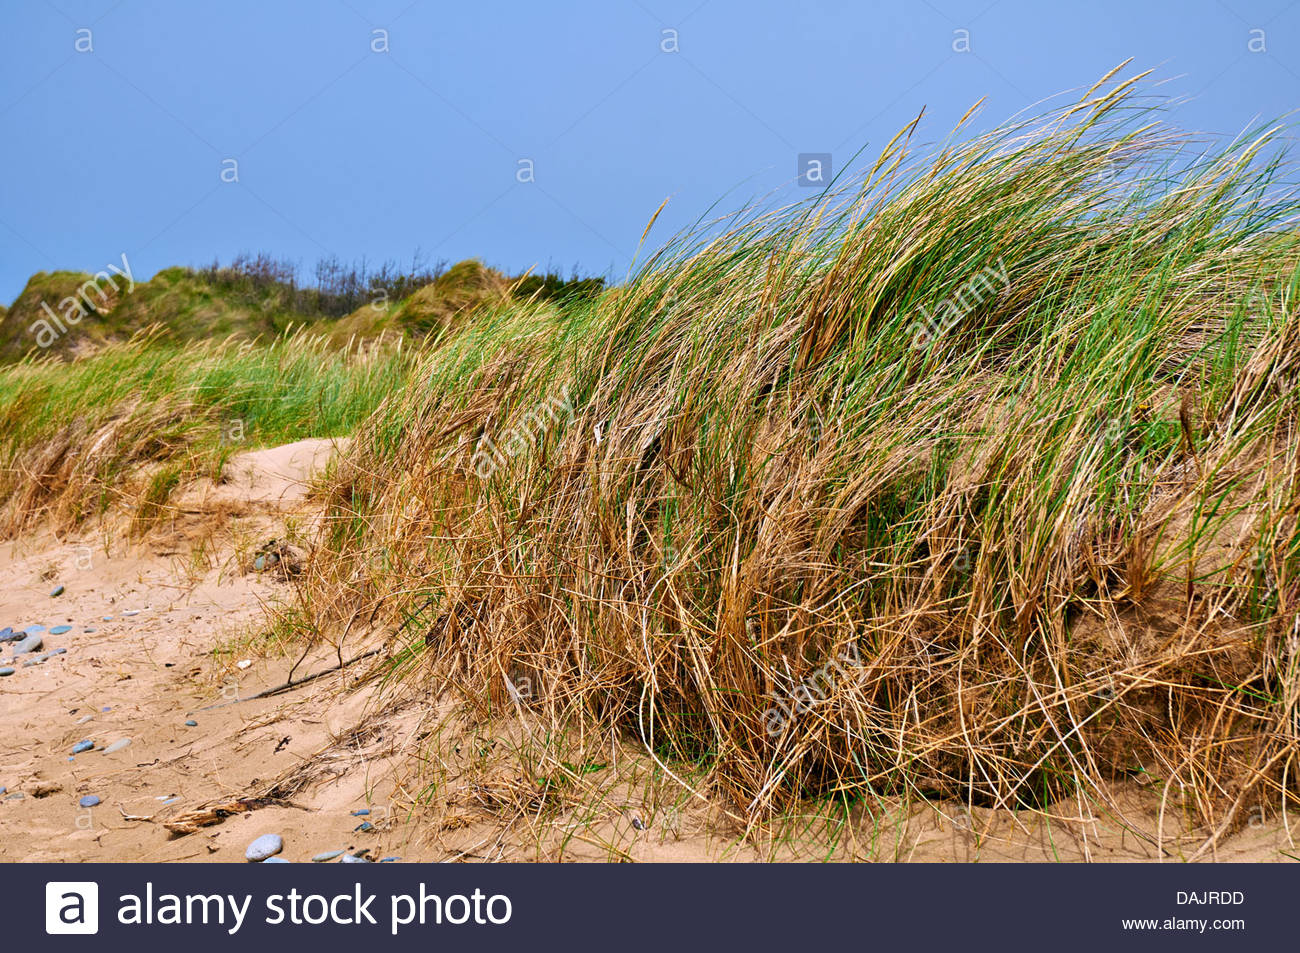 marram grass ammophila arenaria stabilizing the shifting sand on dunes - Stock Image